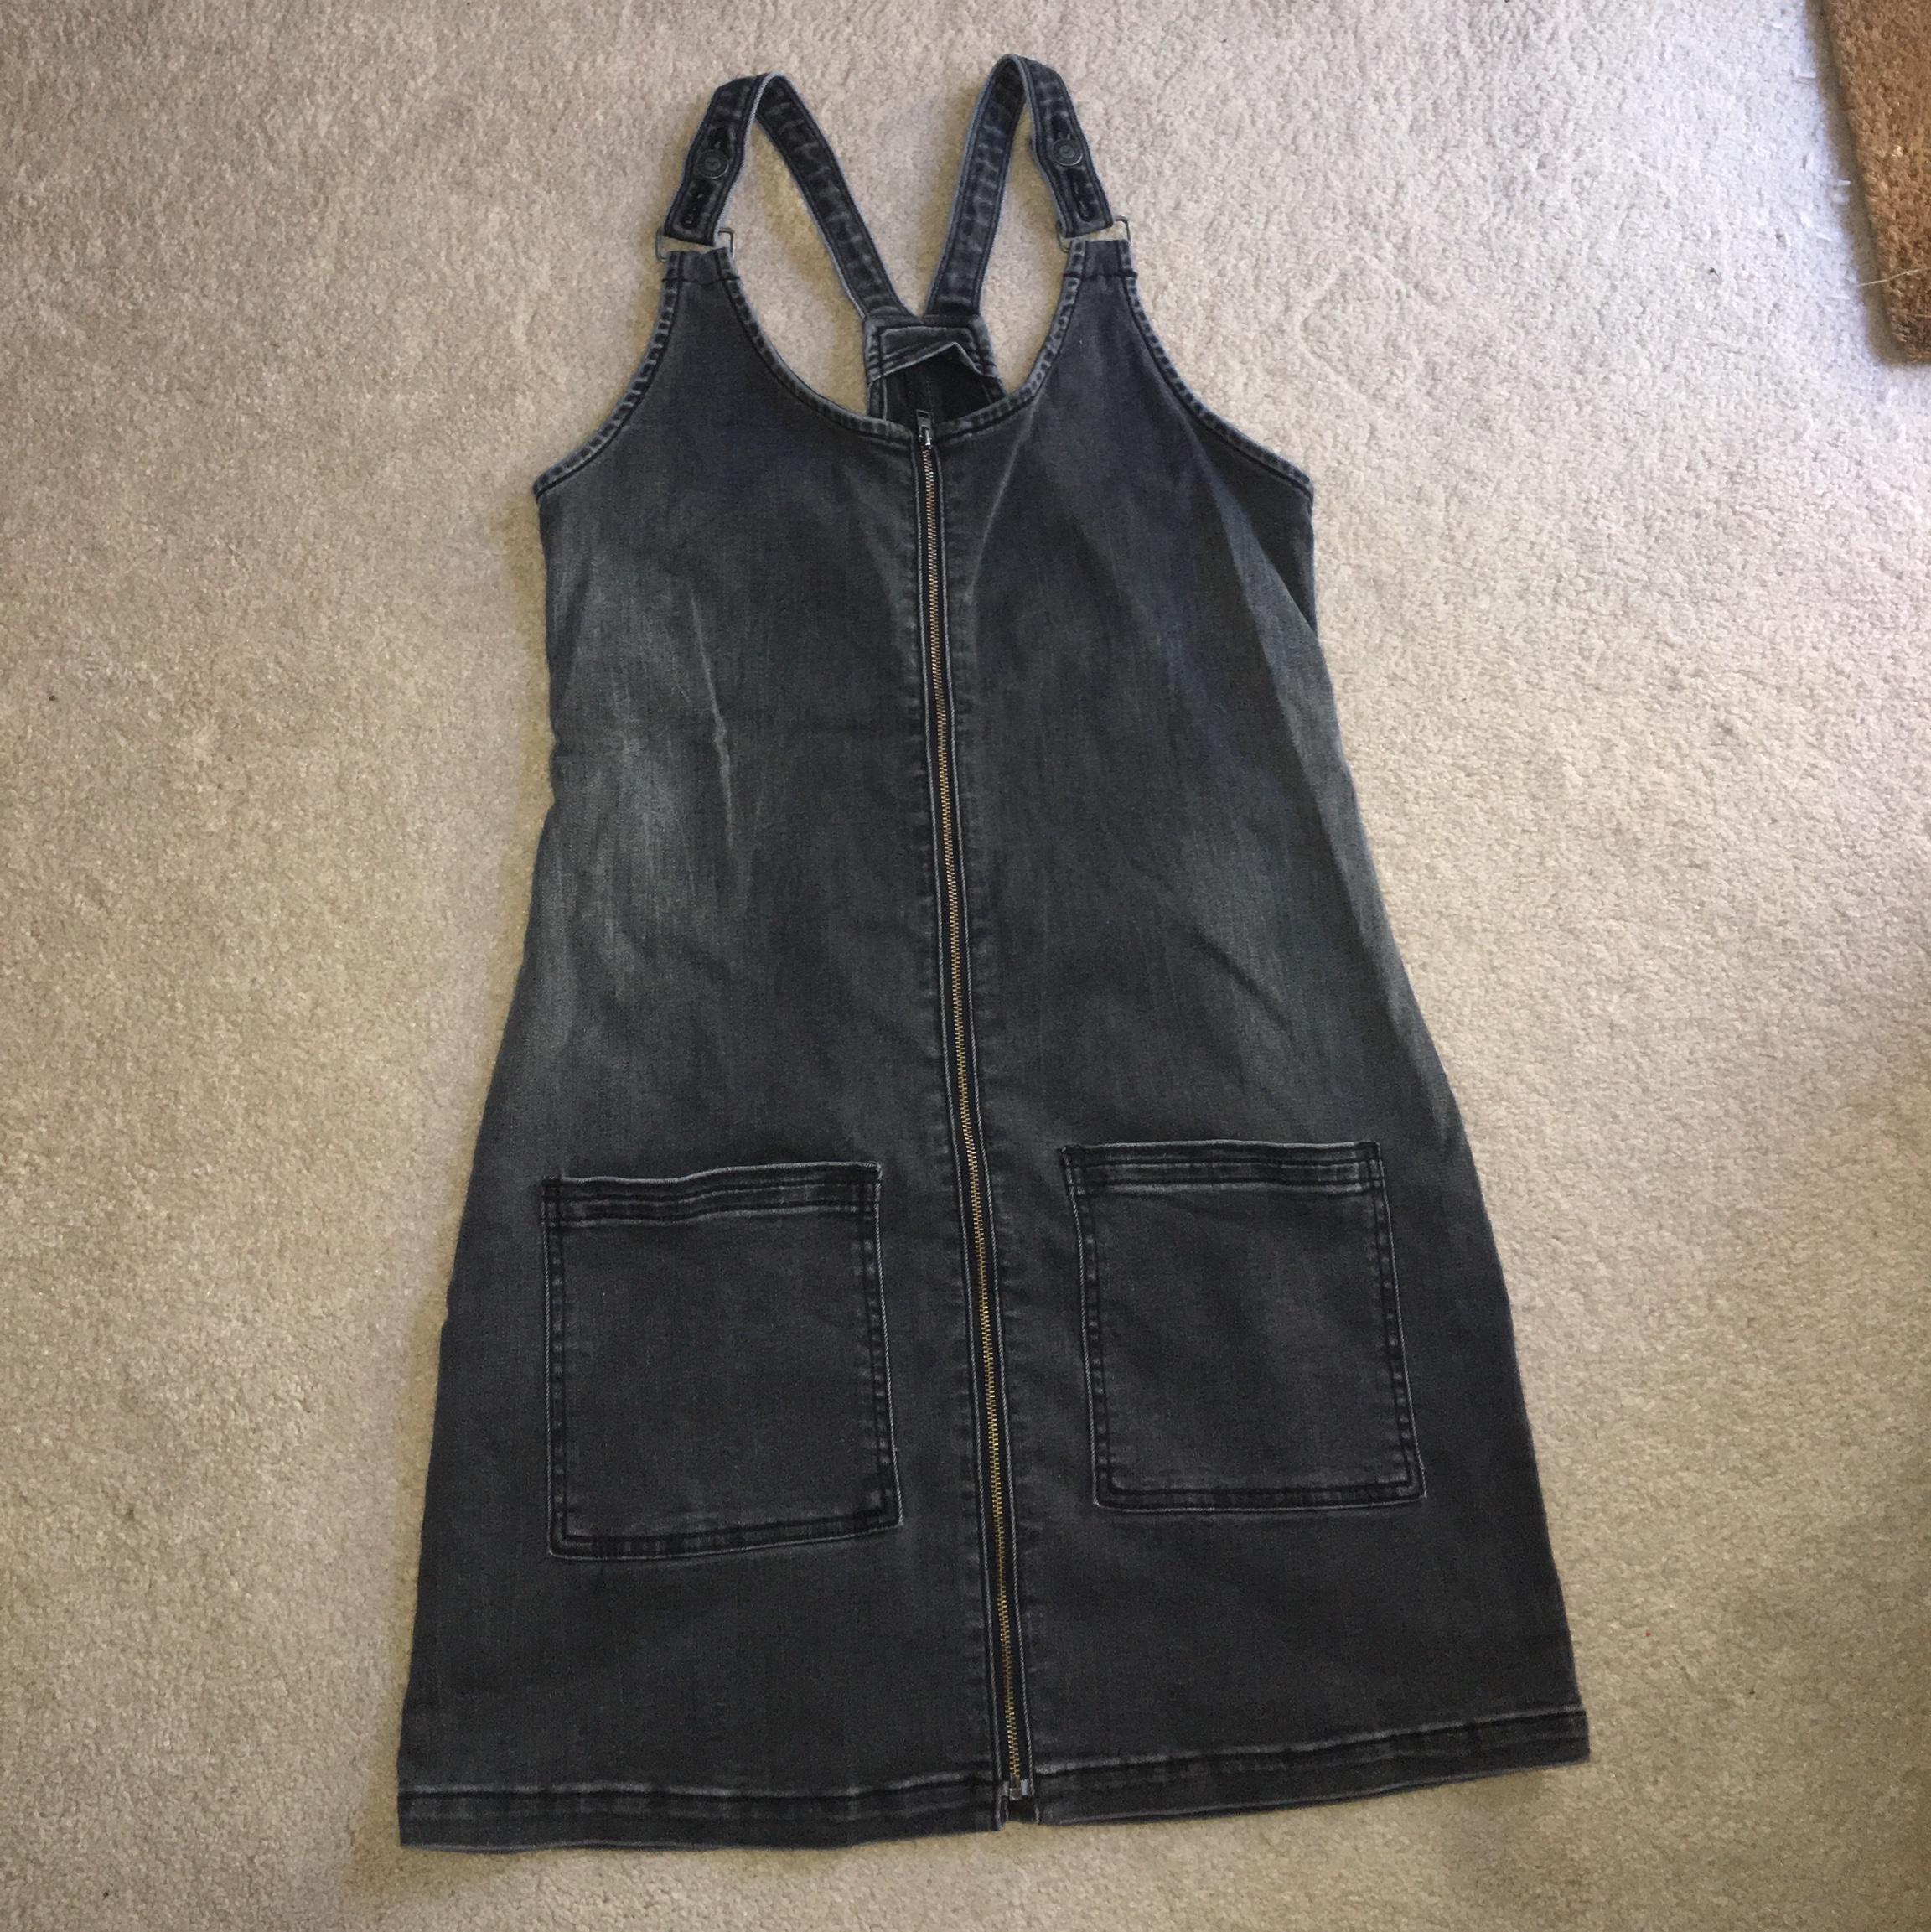 new arrive shades of sold worldwide Black/grey hollister pinafore dress with zip all... - Depop